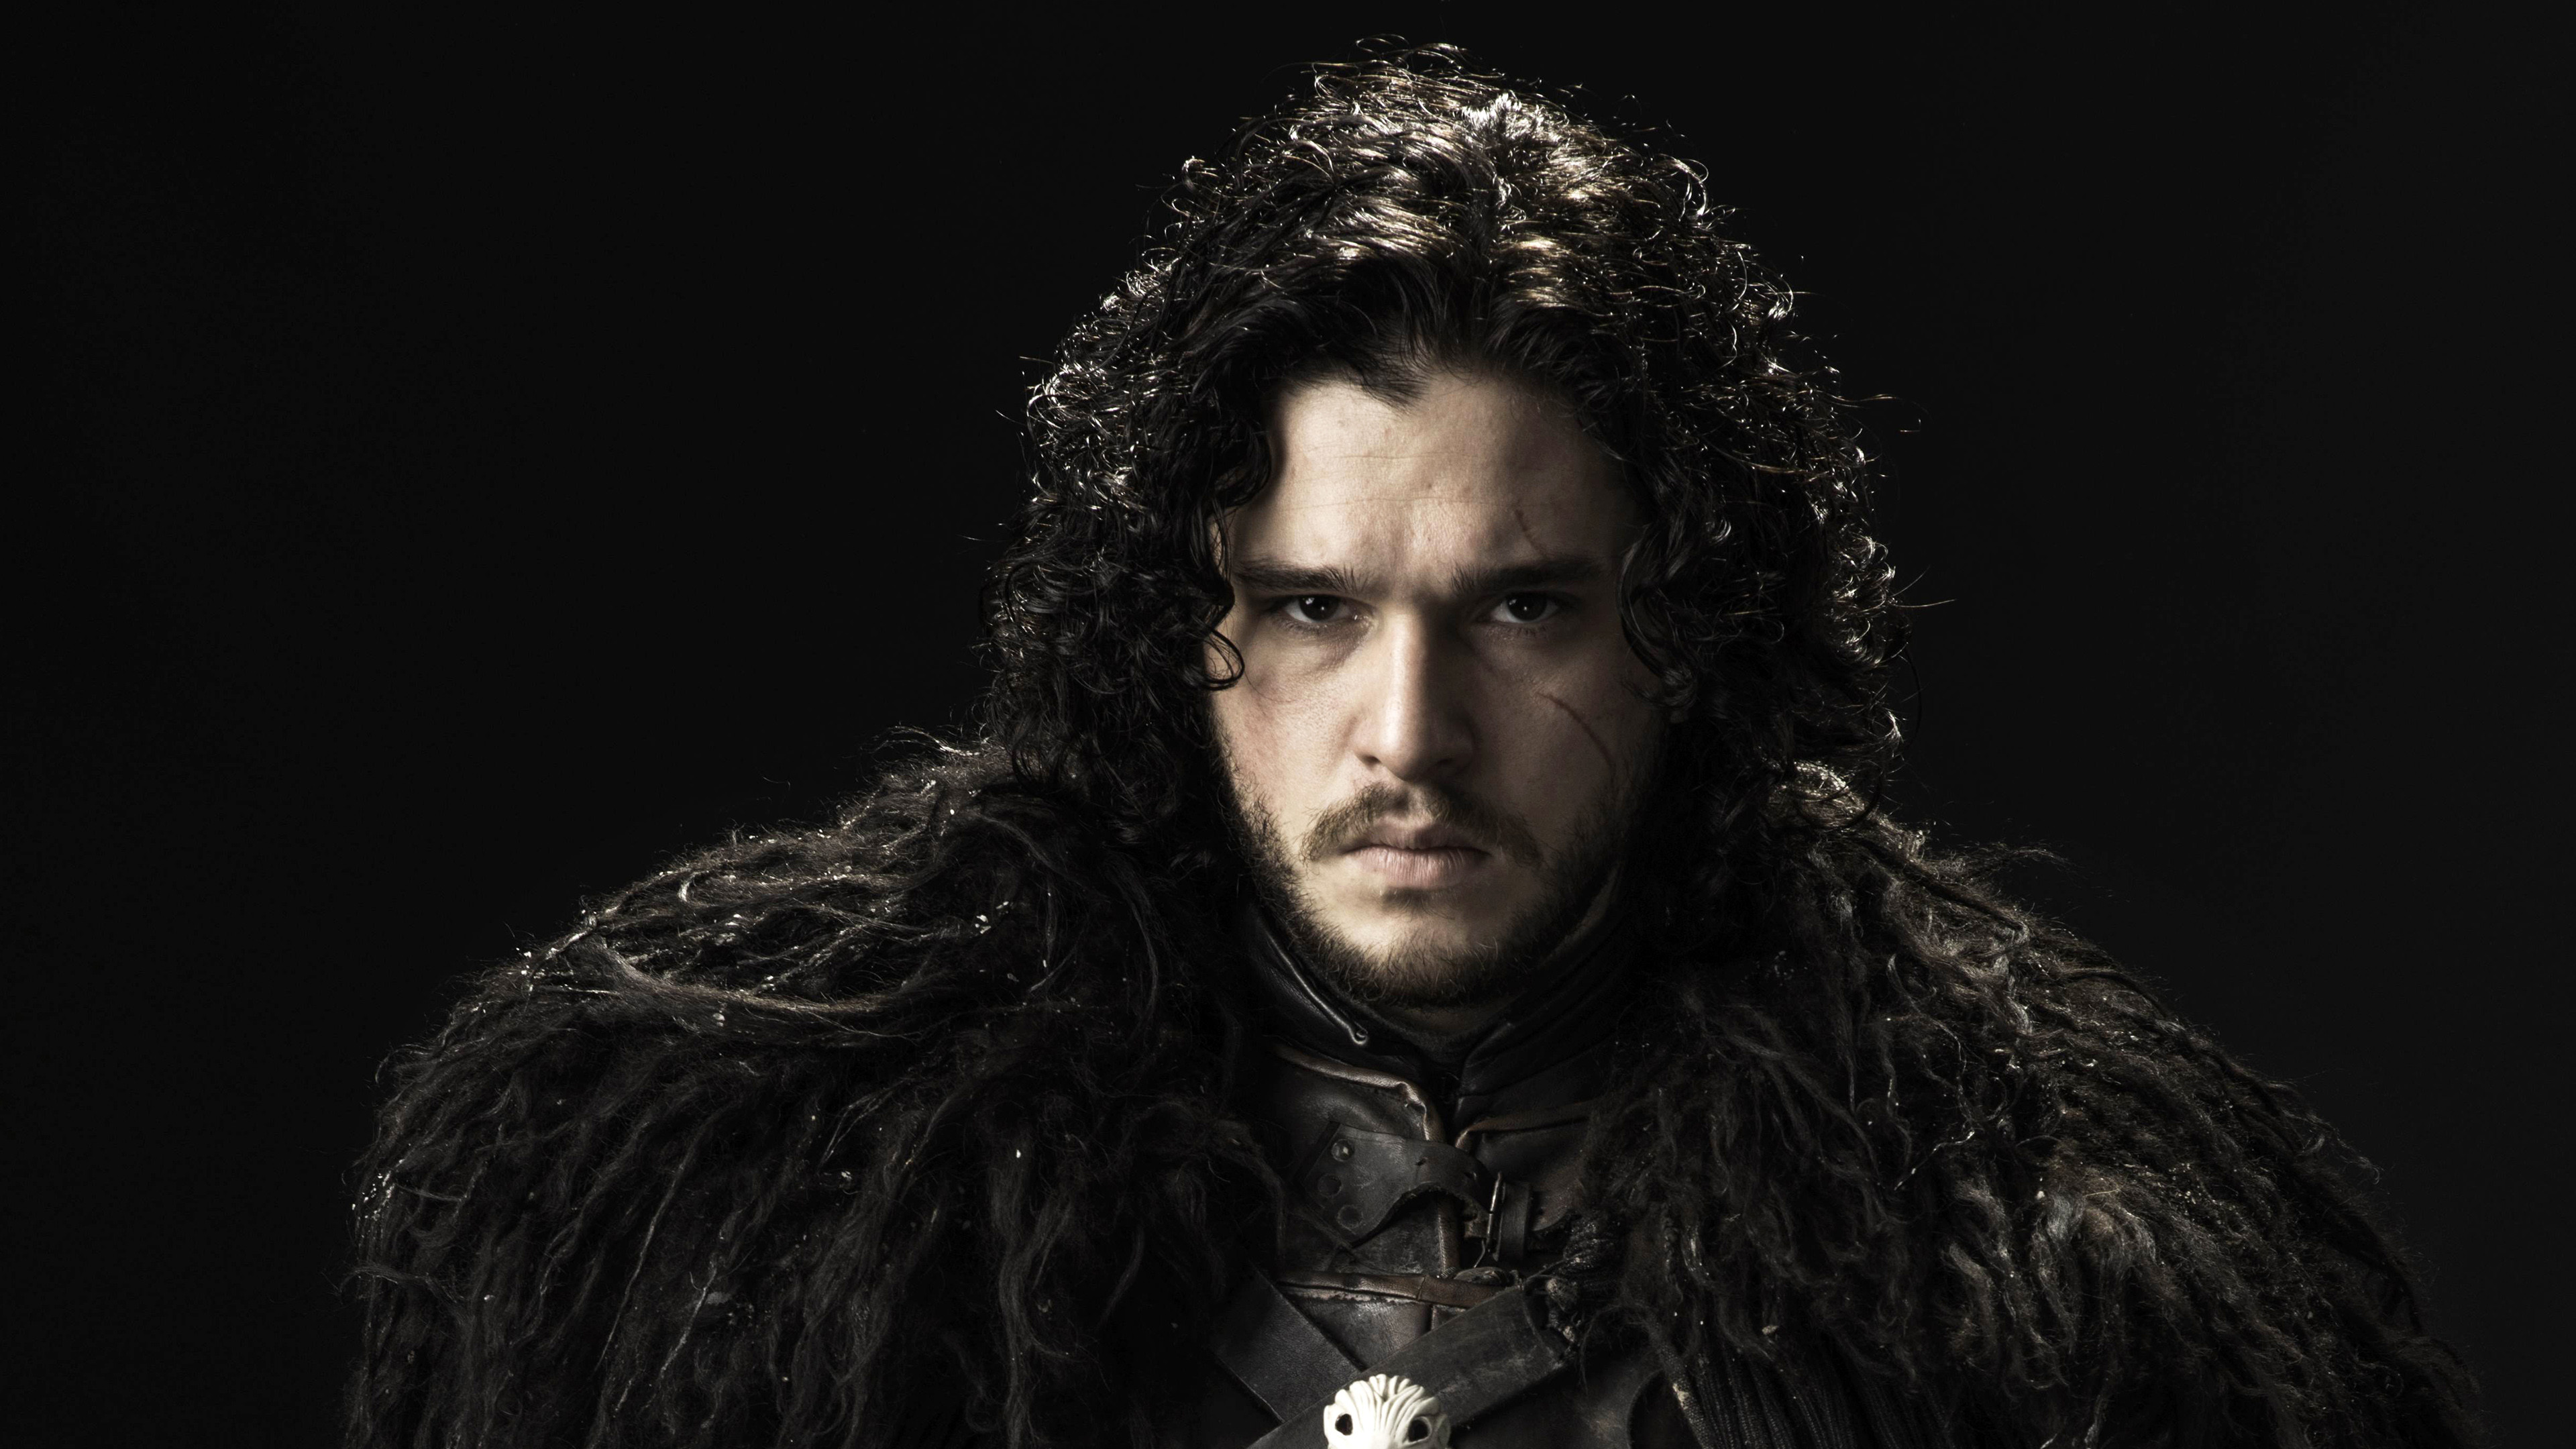 3840x2160 Kit Harington Jon Snow Game of Thrones Wallpapers | HD Wallpapers